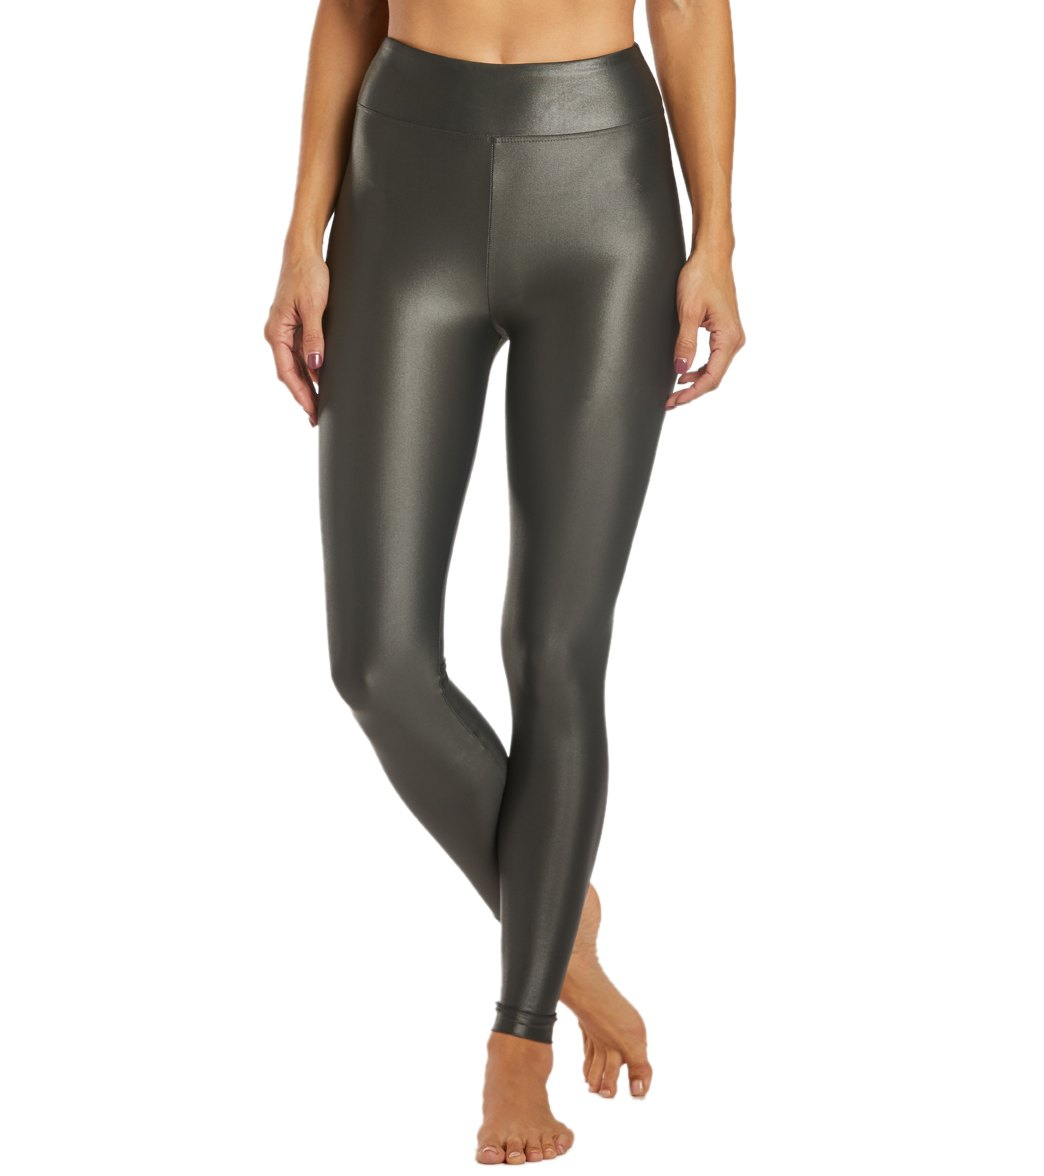 KORAL Lustrous High Rise Yoga Leggings - Agave Spandex